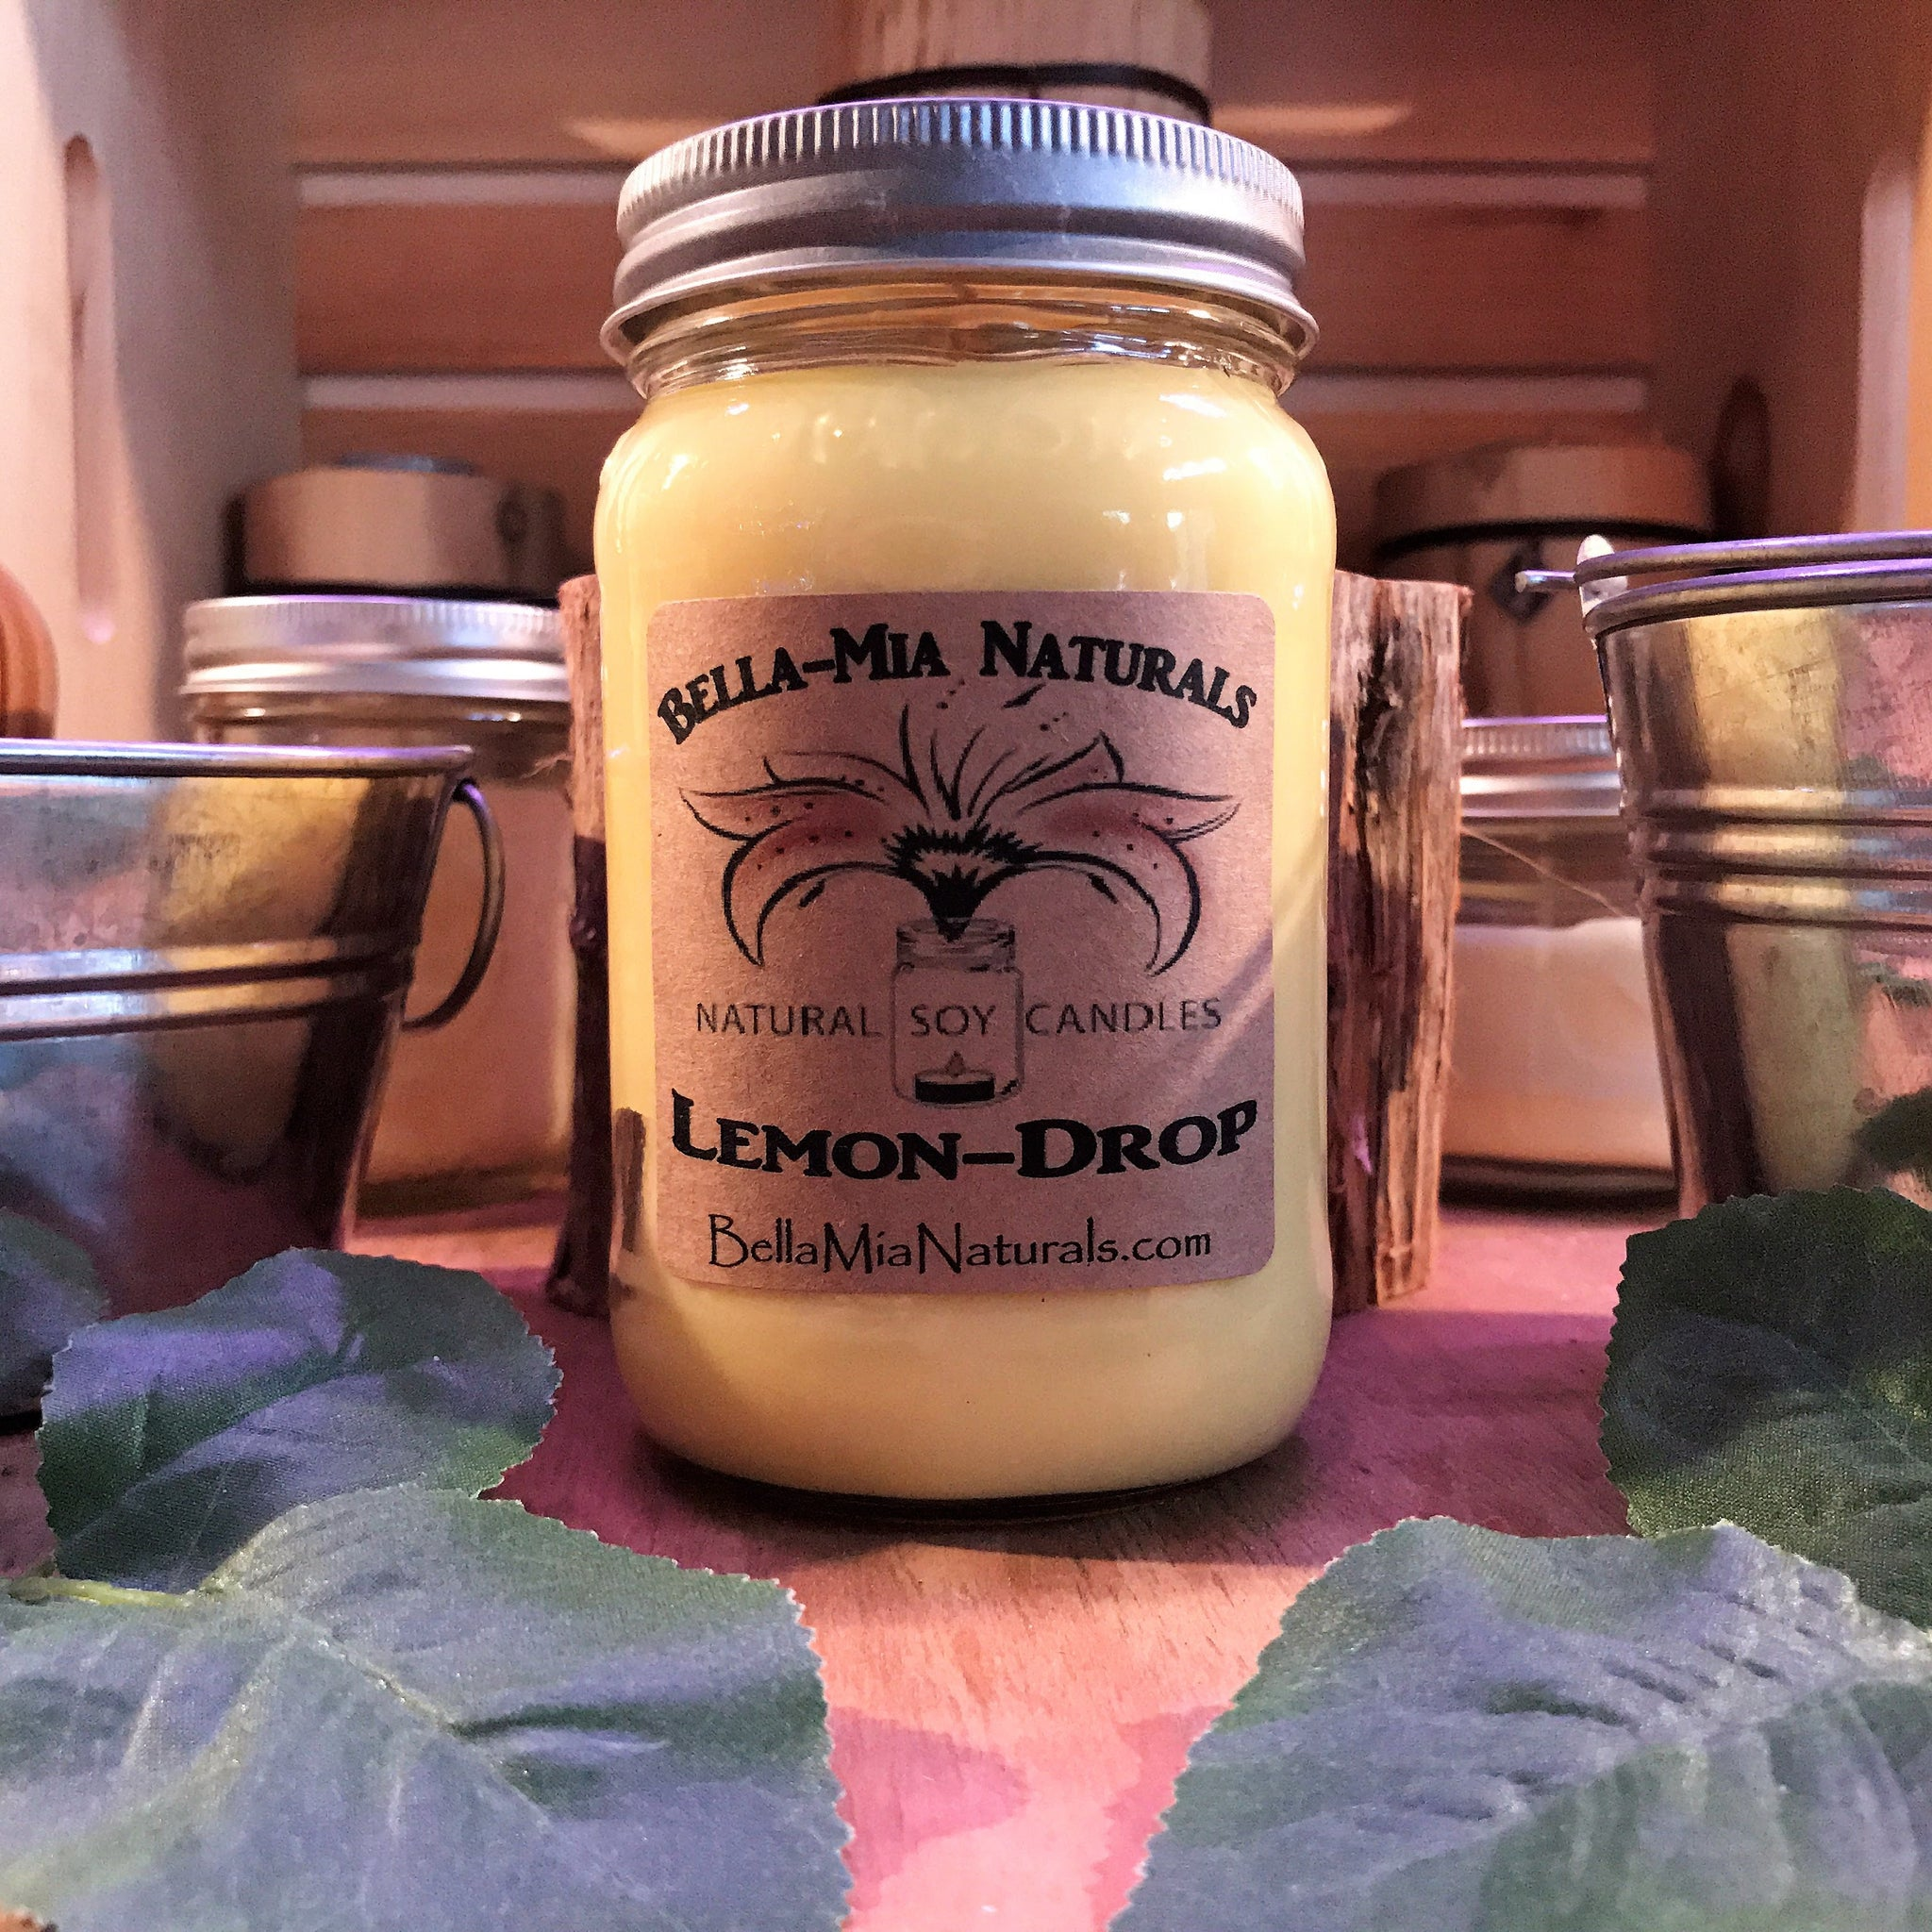 Lemon-Drop Natural Hand Poured Soy Candles & Melts